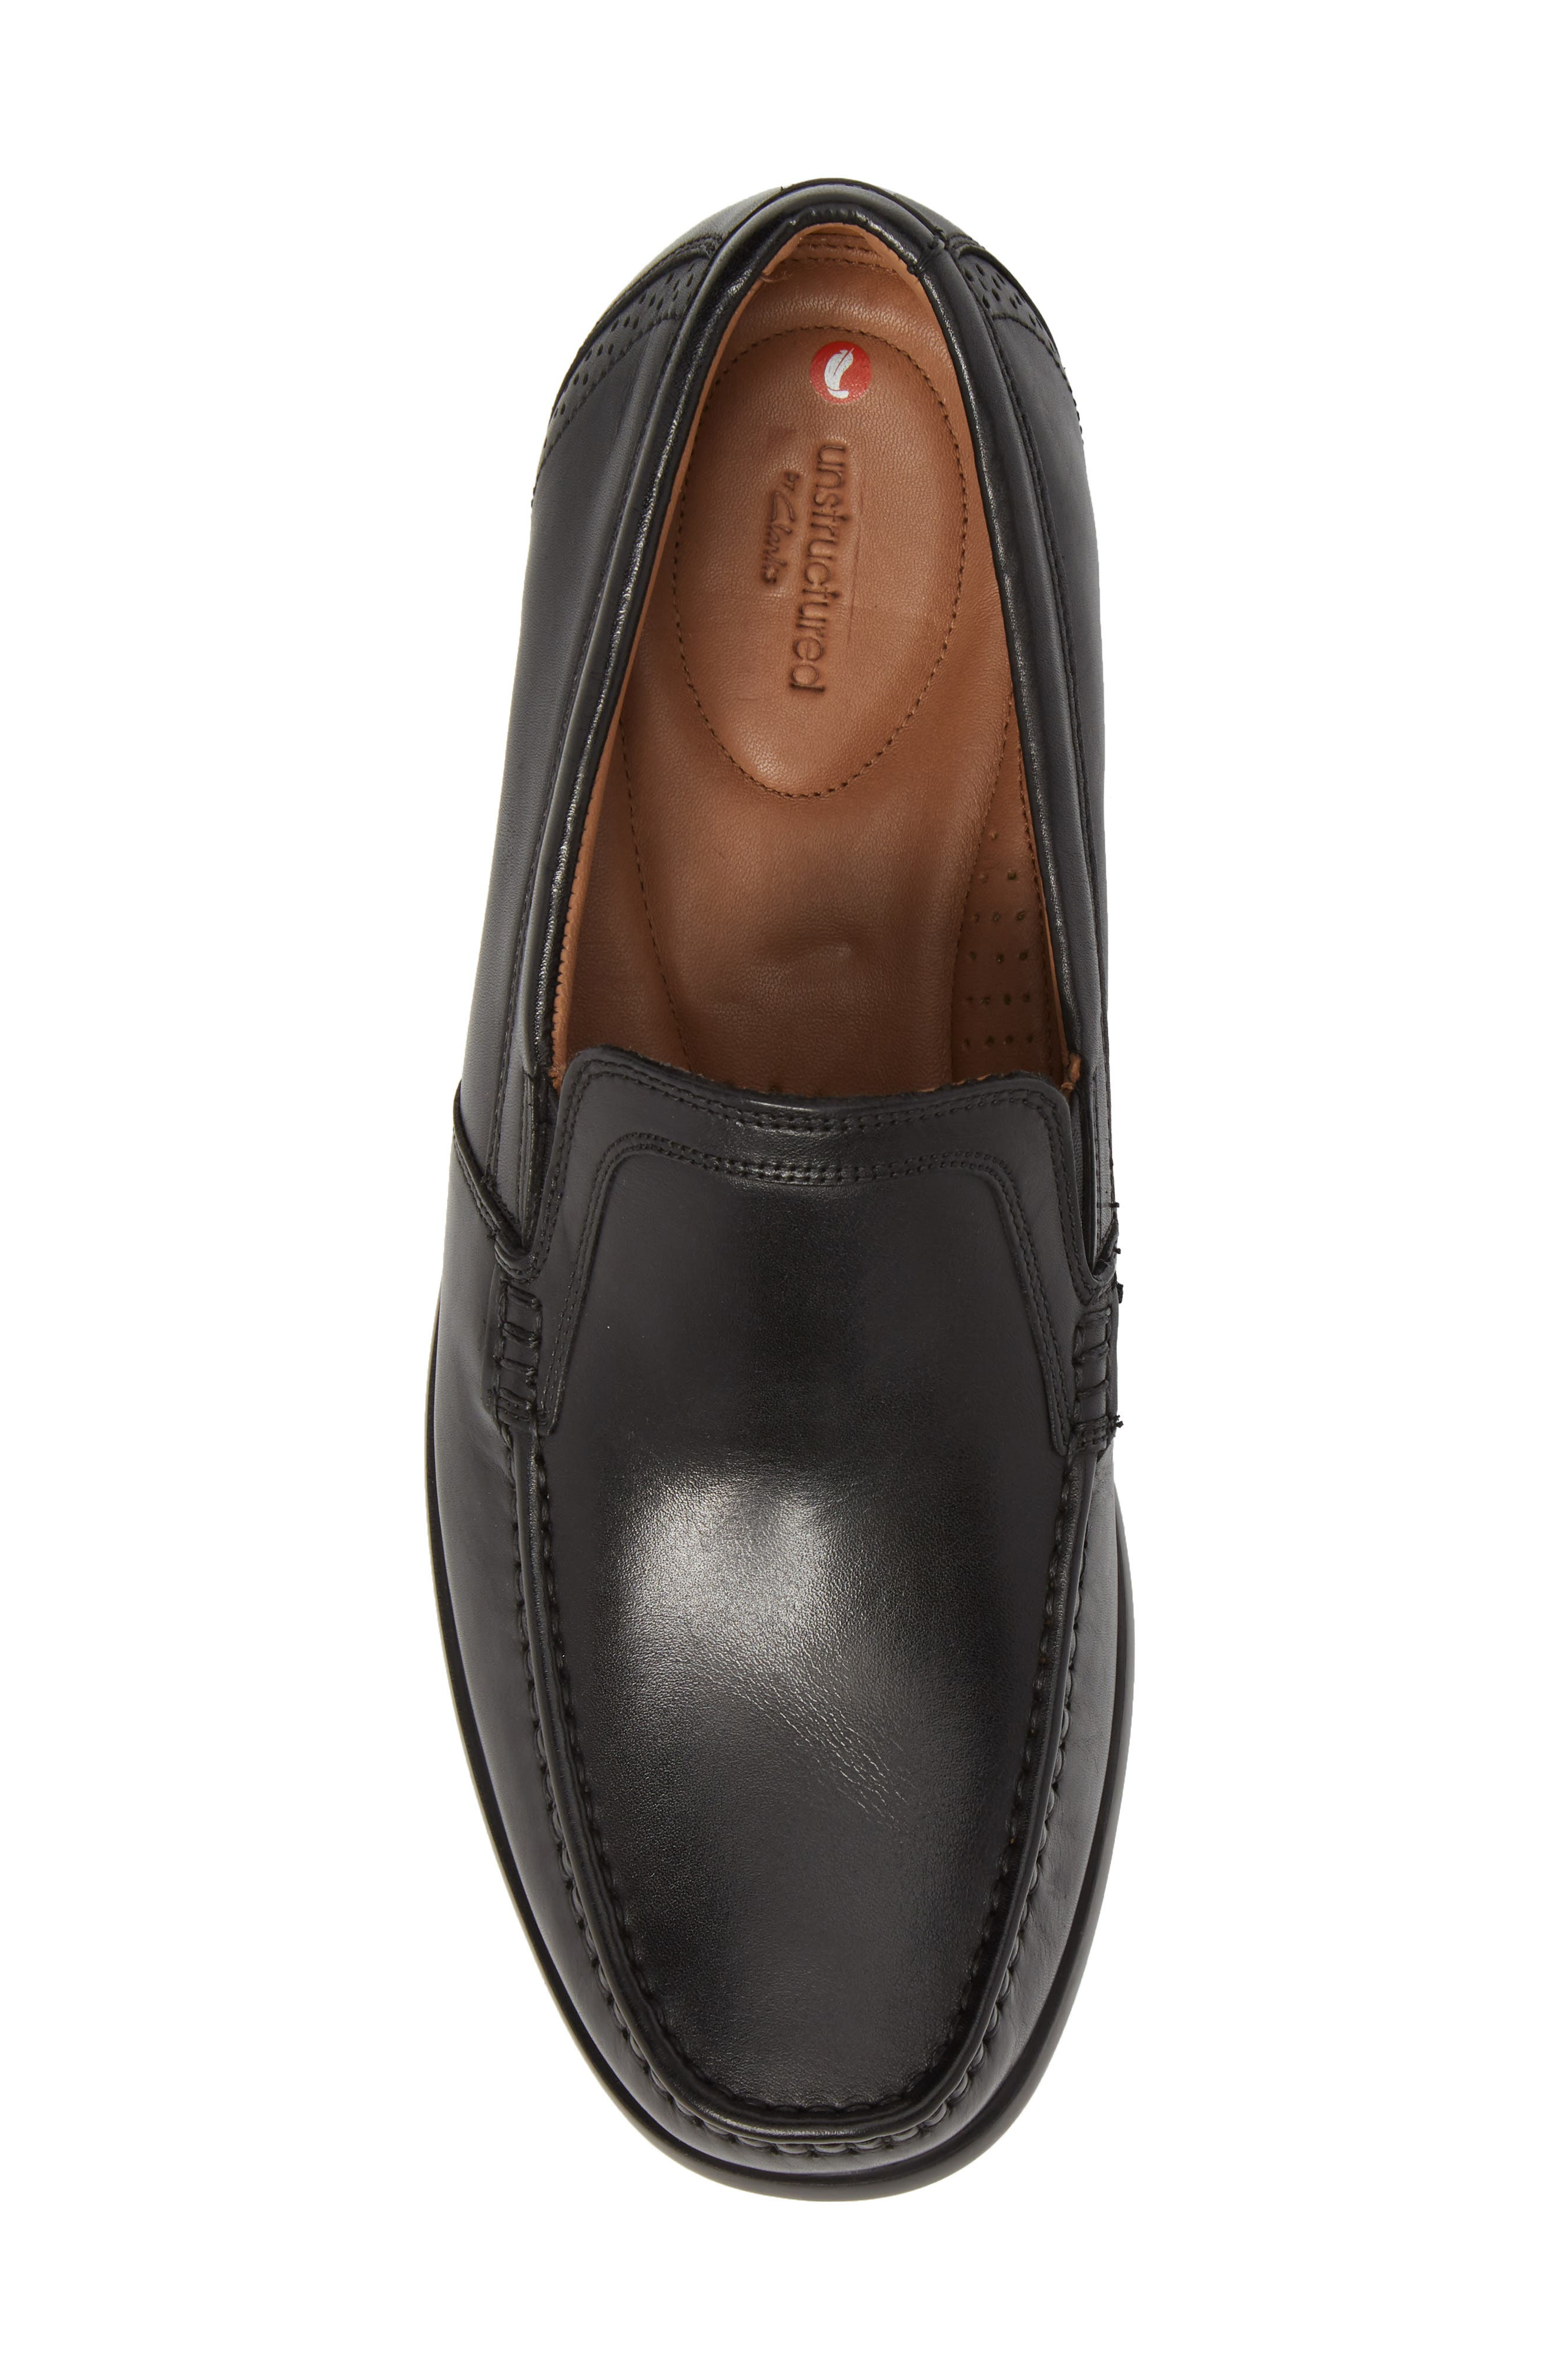 Clarks<sup>®</sup> Ungala Free Venetian Loafer,                             Alternate thumbnail 5, color,                             Black Leather